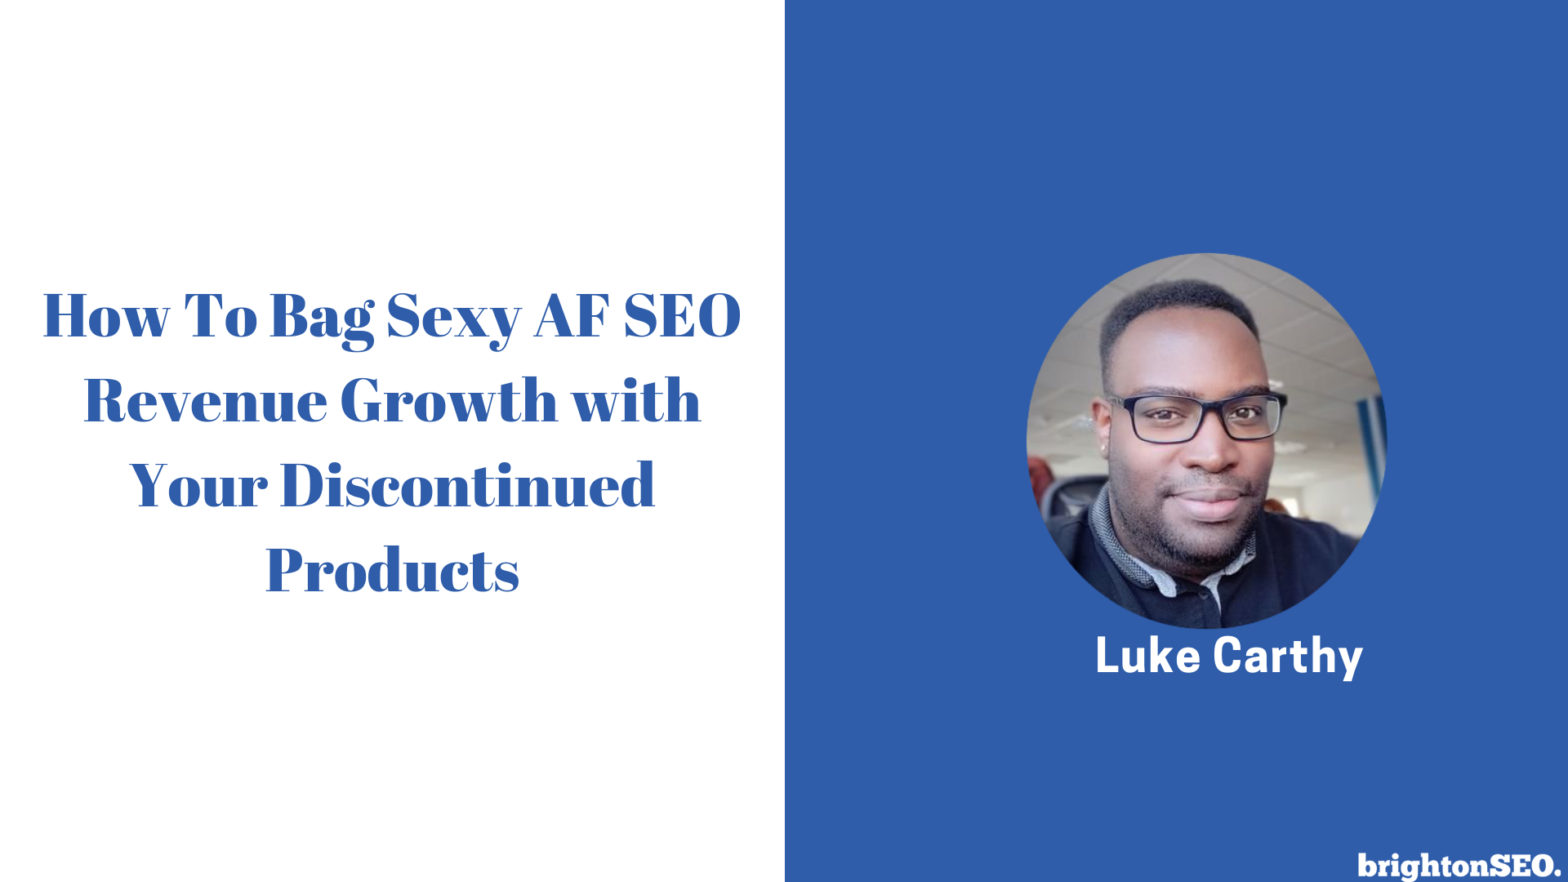 Luke Carthy - How To Bag Sexy AF SEO Revenue Growth with Your Discontinued Products